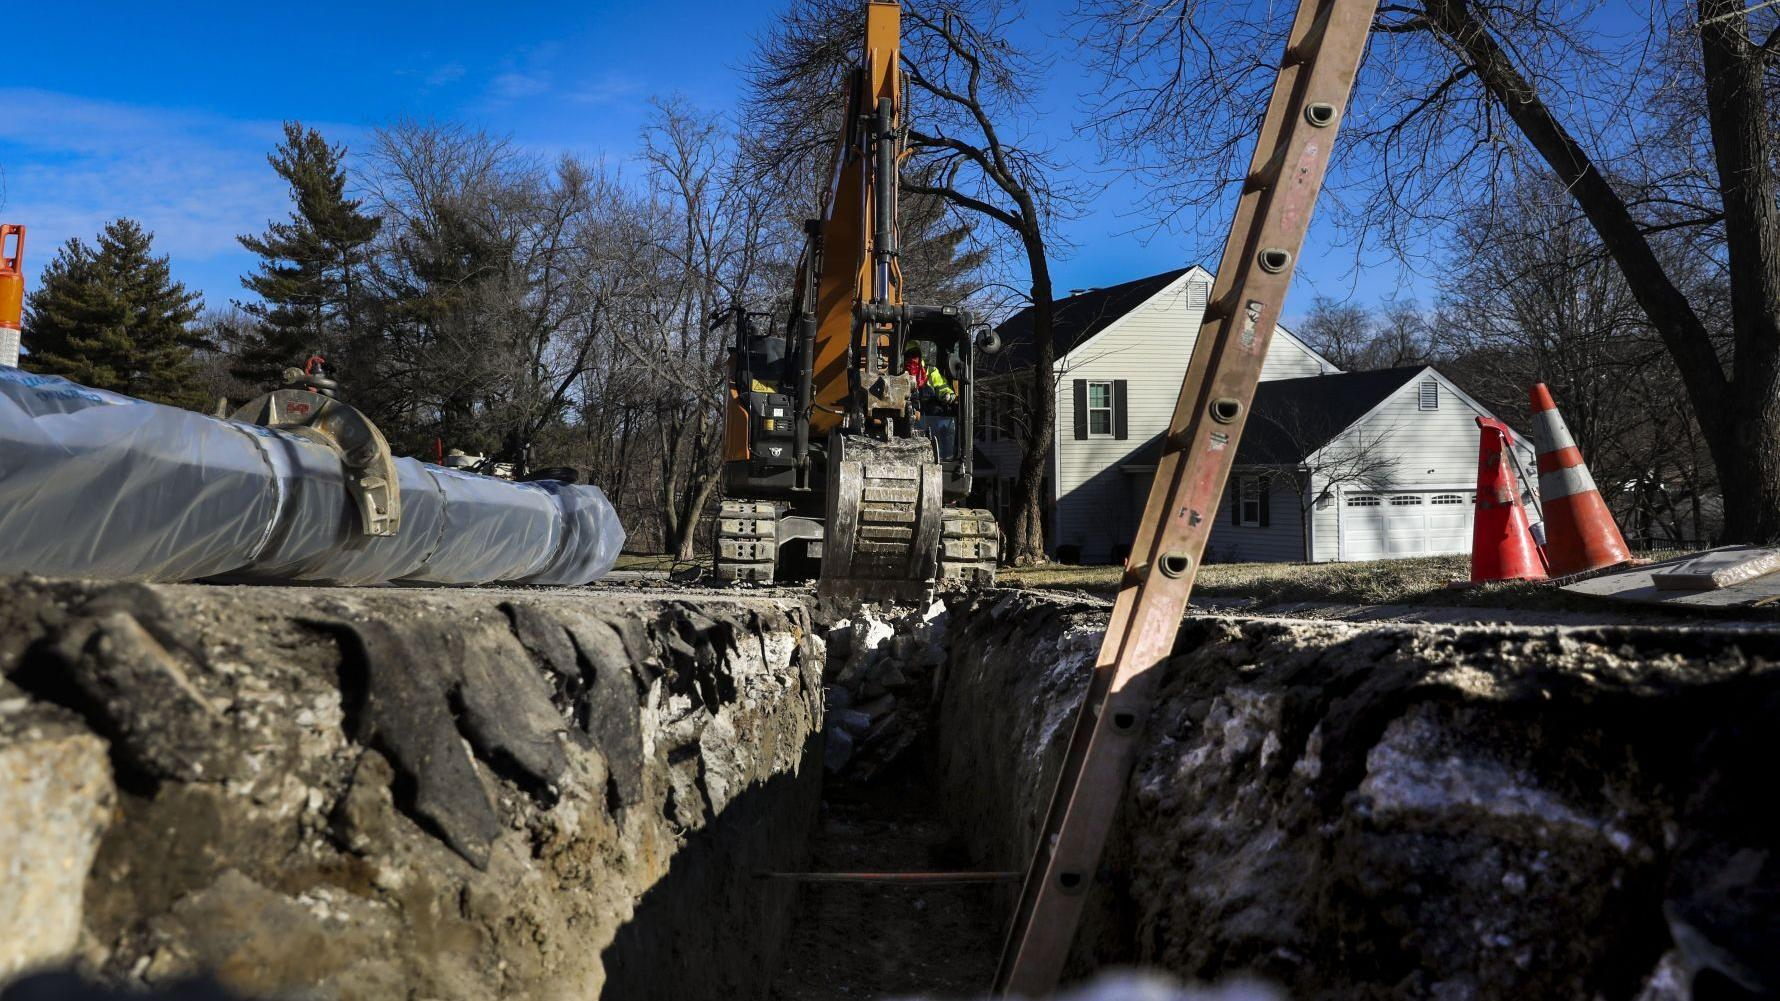 Watchdogs say Missouri American Water's proposed rate increase would be 'disproportionately bad' for St. Louis area customers